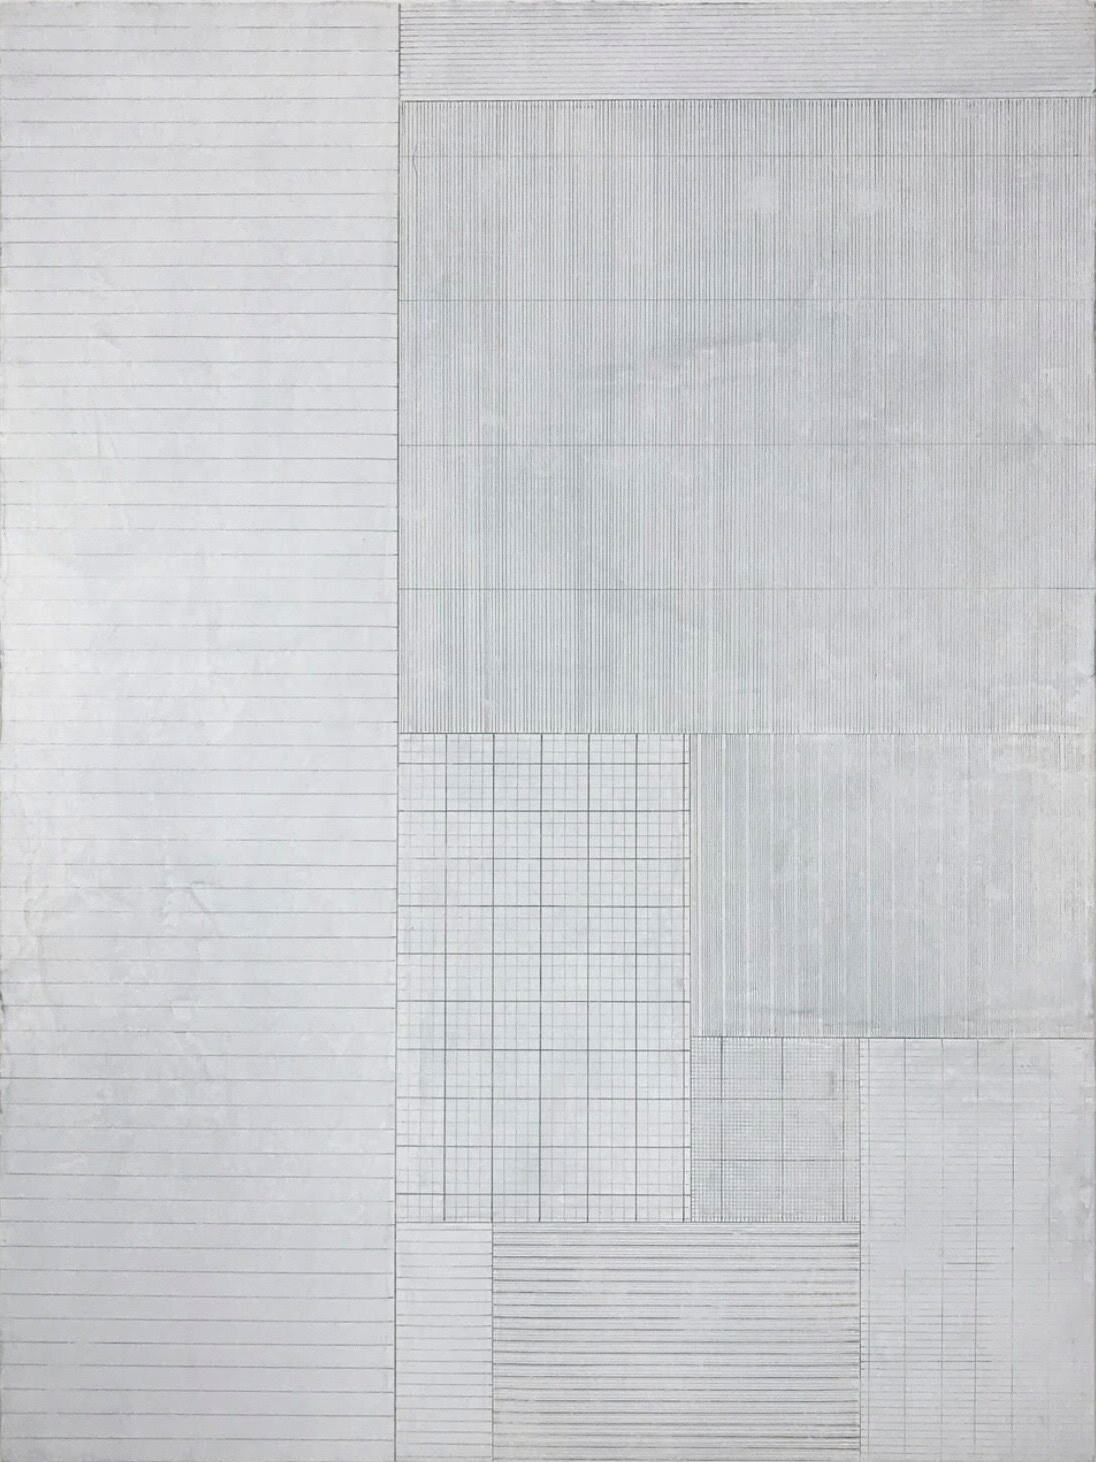 Untitled 8 - 24 x 18  - silverpoint and mixed media on panel